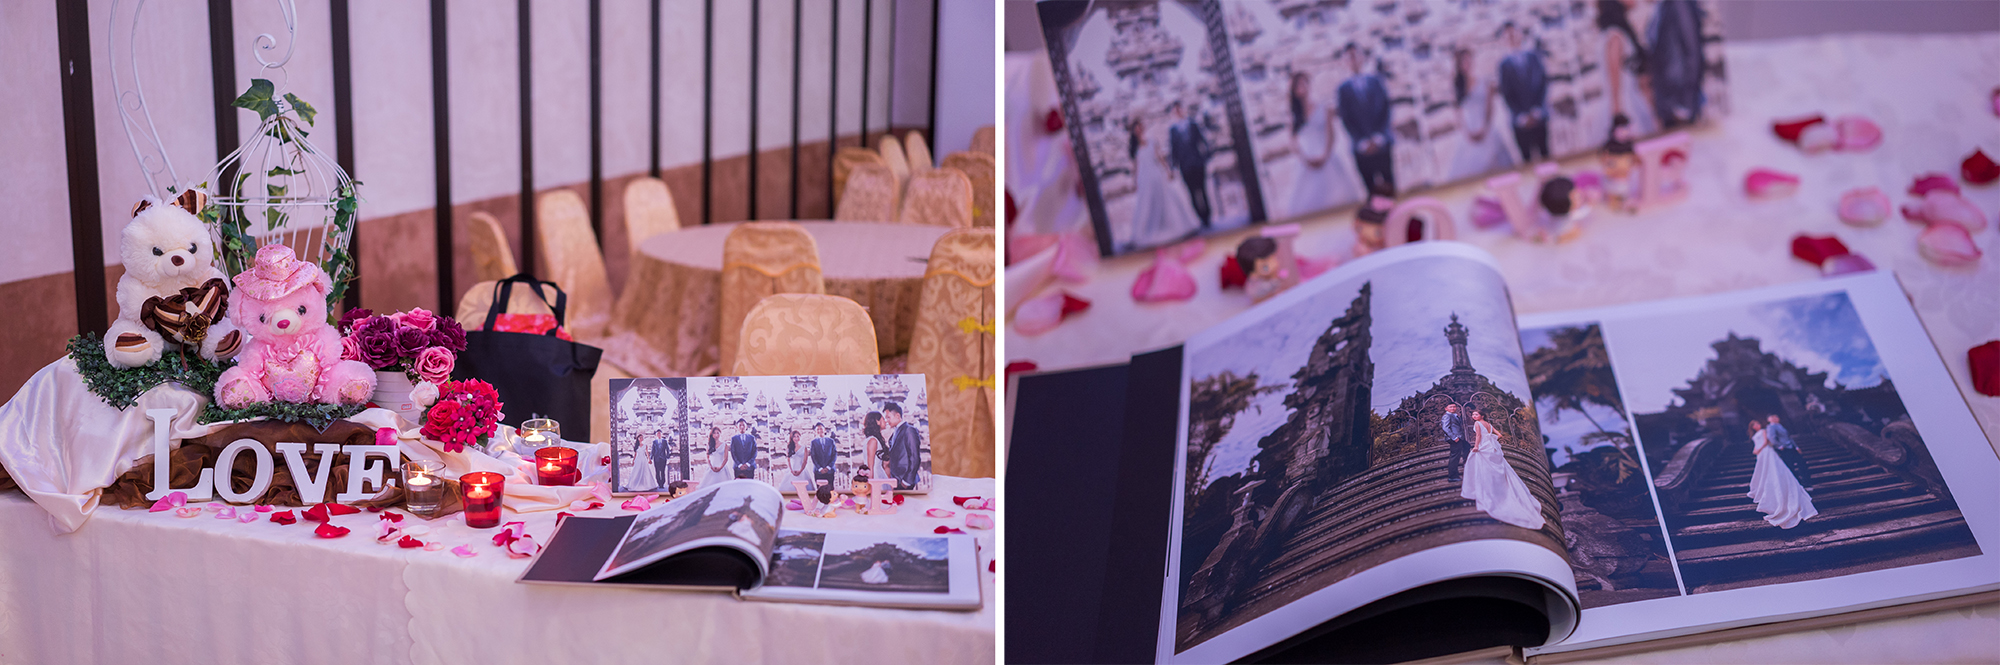 Reception deco & wedding album